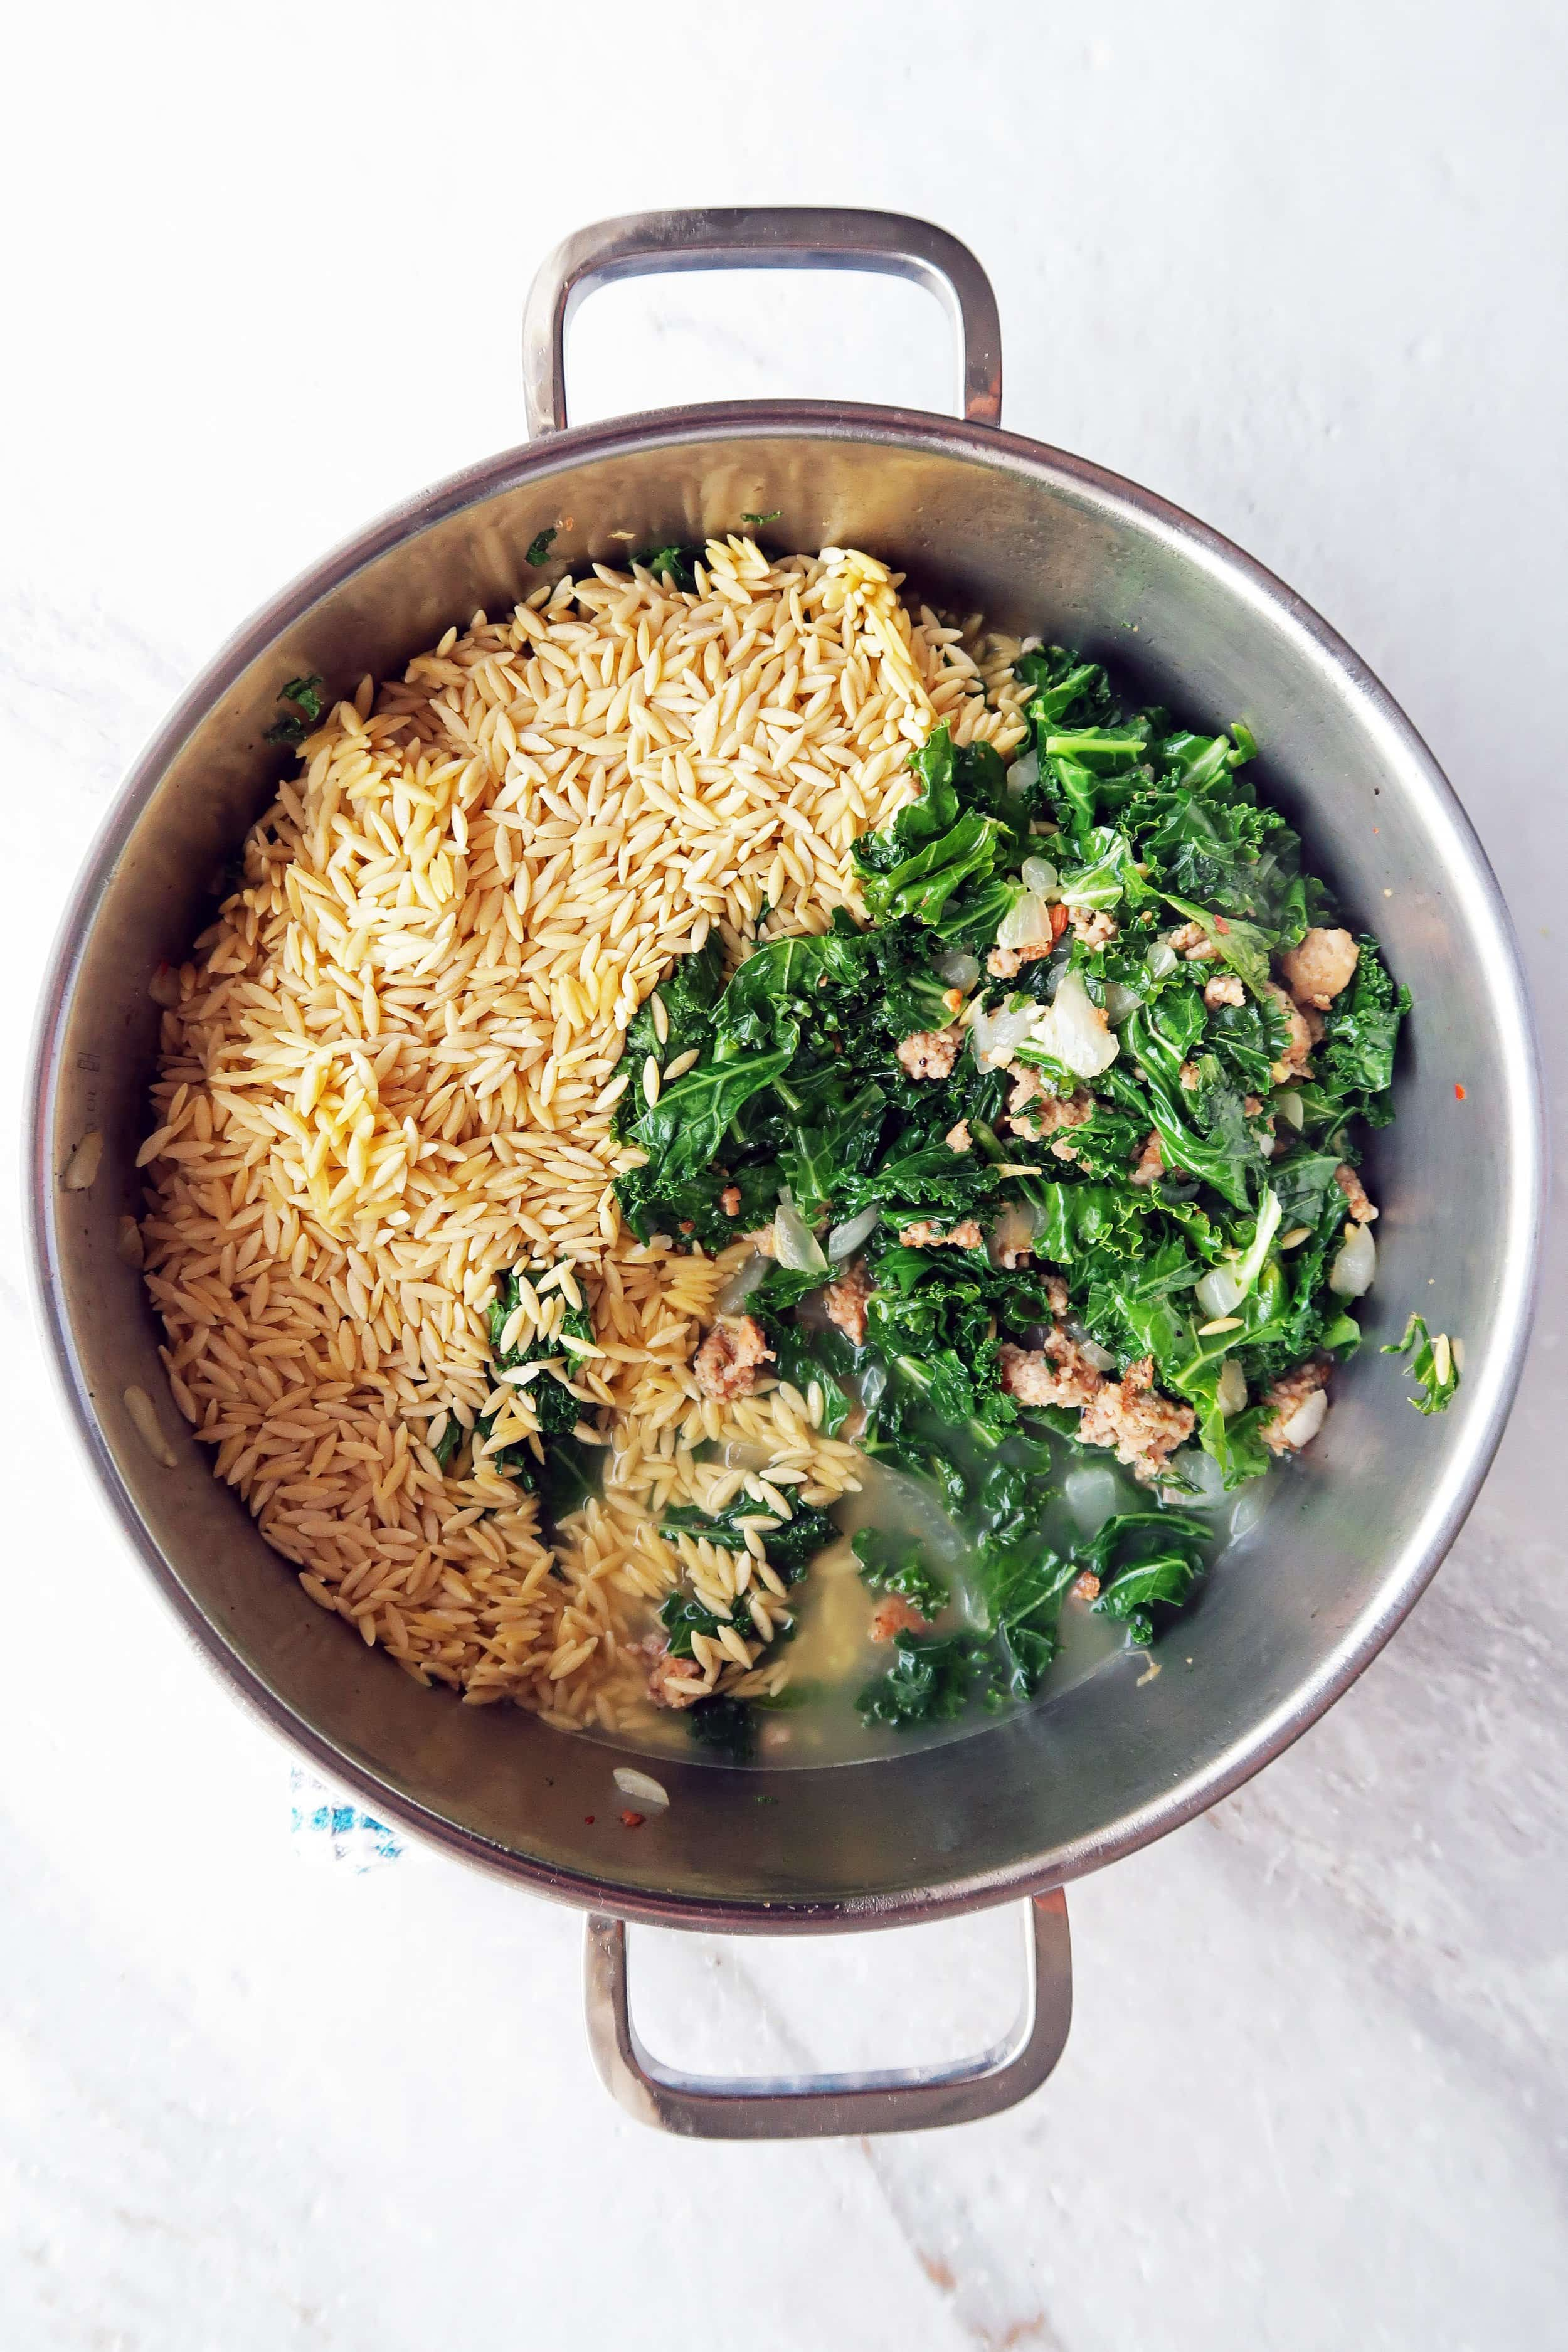 Cooked sausage, sautéed onion, garlic, and kale, broth, and uncooked orzo in a pot.